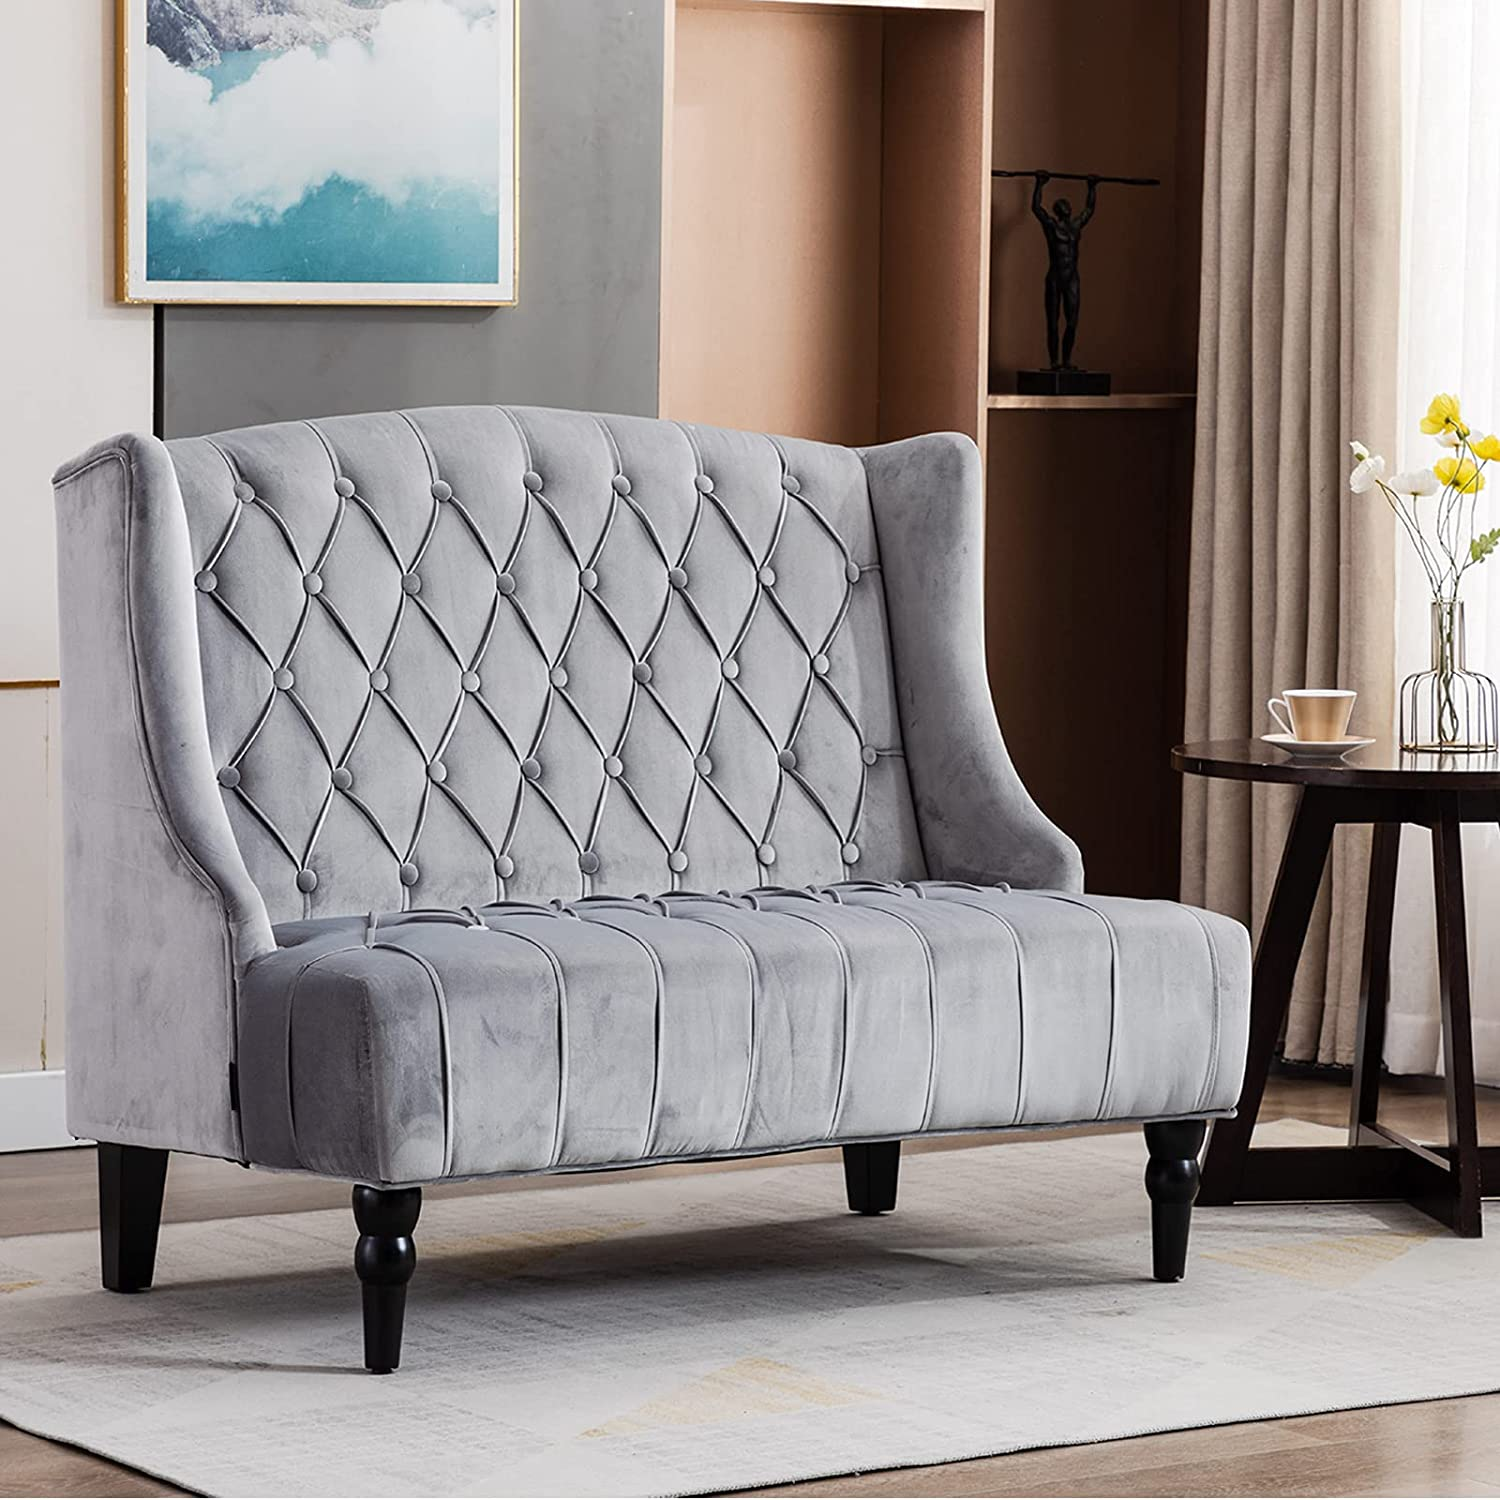 Artechworks Button-Tufted Velvet High-Back Club Loveseat, Living Room Accent Chair with Wing Back Wooden Legs, Mid-Century Modern Armless Chair, Grey